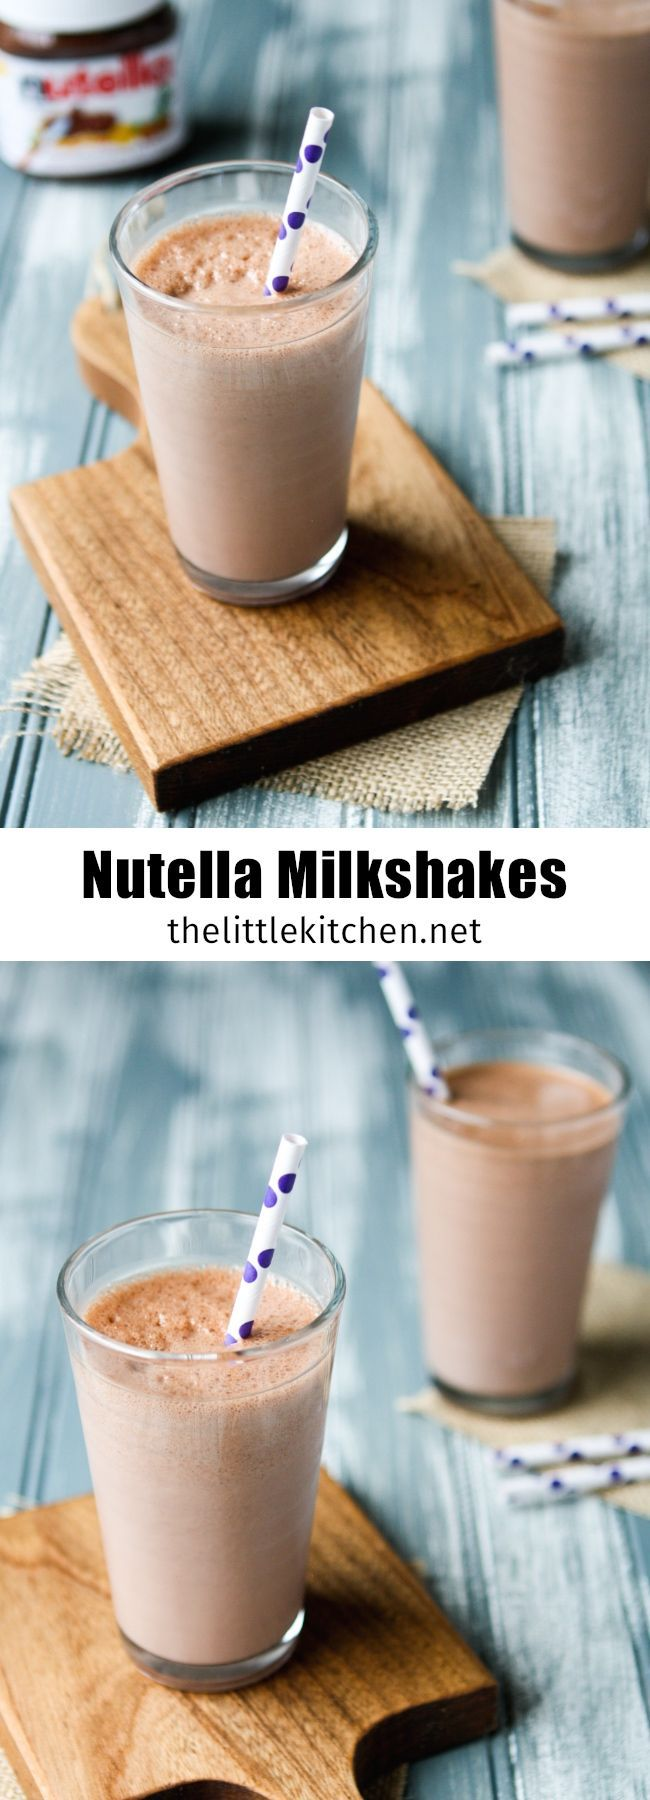 (this is wonderful and easy to make!) Nutella Milkshakes from thelittlekitchen.net